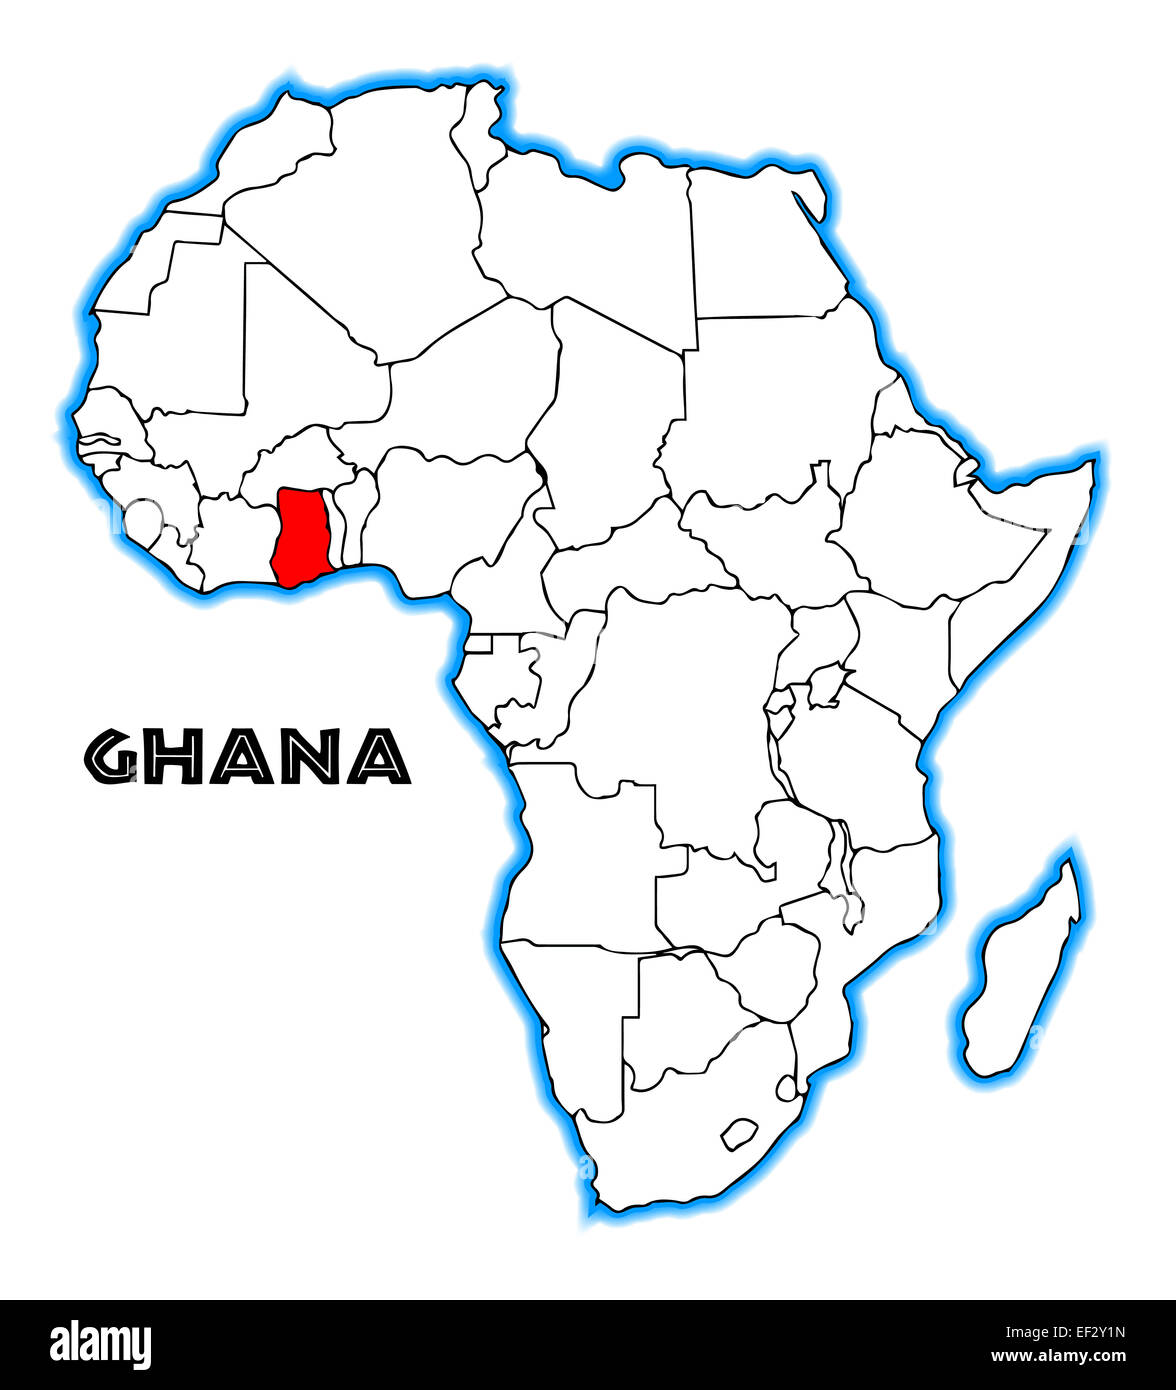 africa map with ghana